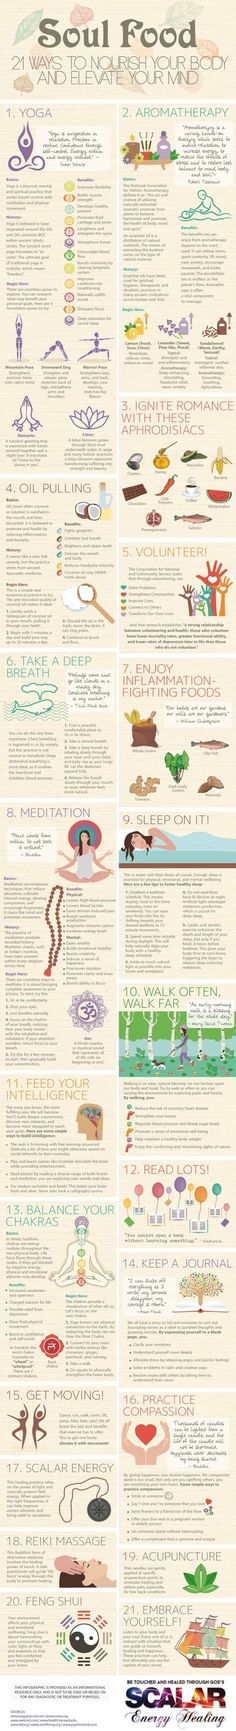 Infographic: 21 Ways To Make Yourself Feel Good, Be Better - DesignTAXI.com